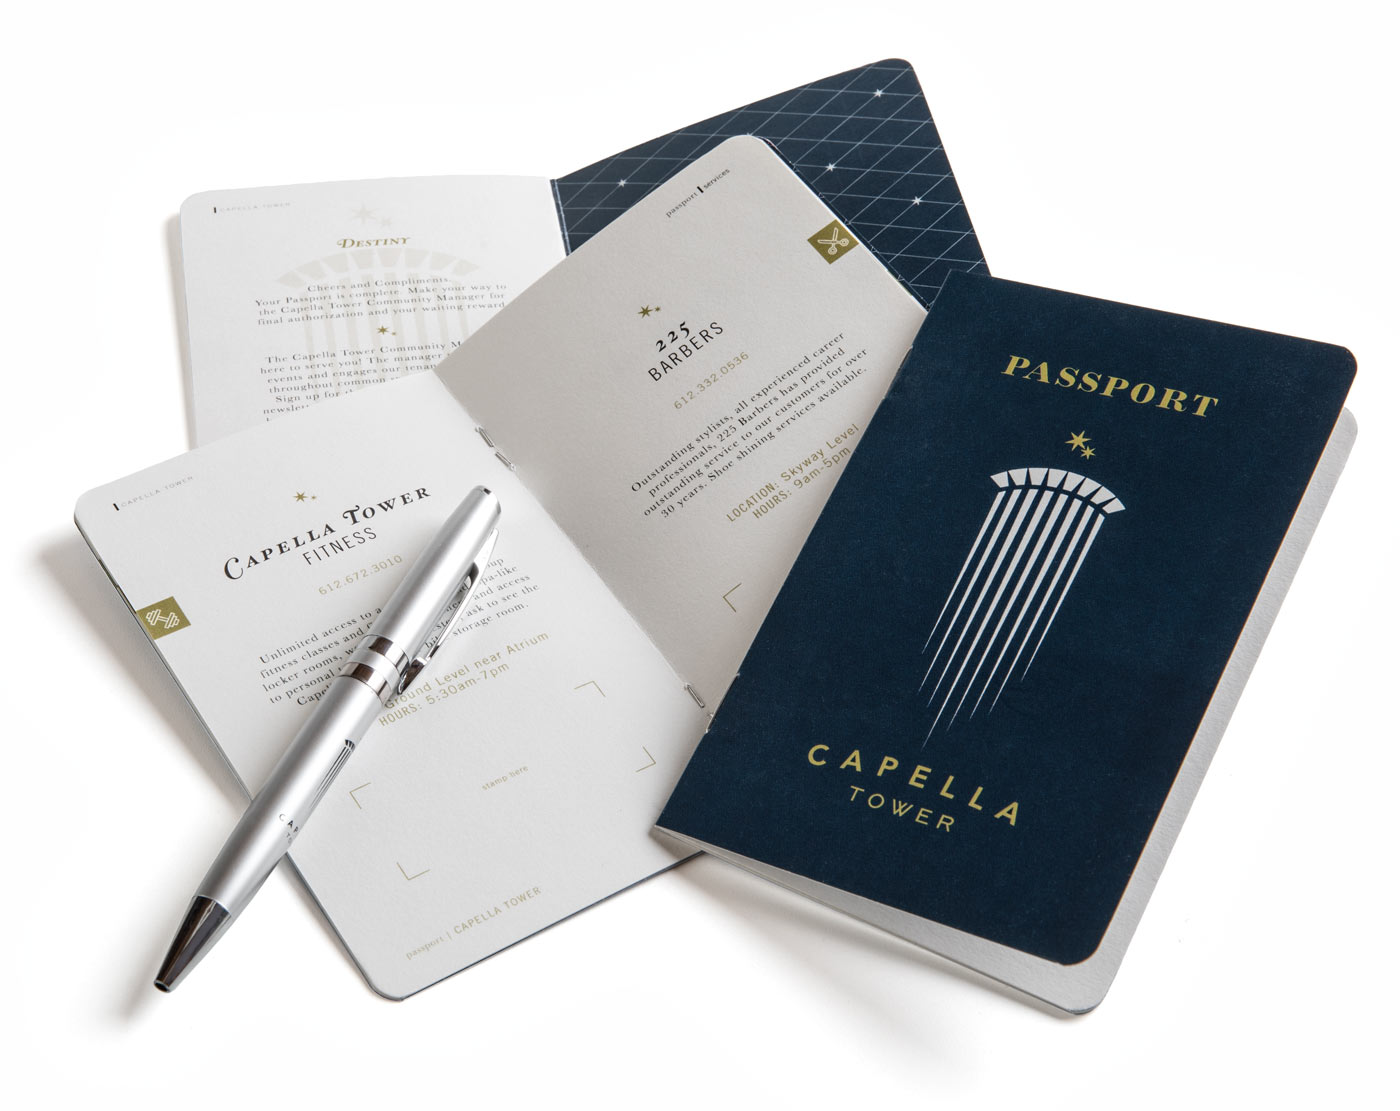 Passport for Capella Tower of Minneapolis, Minnesota